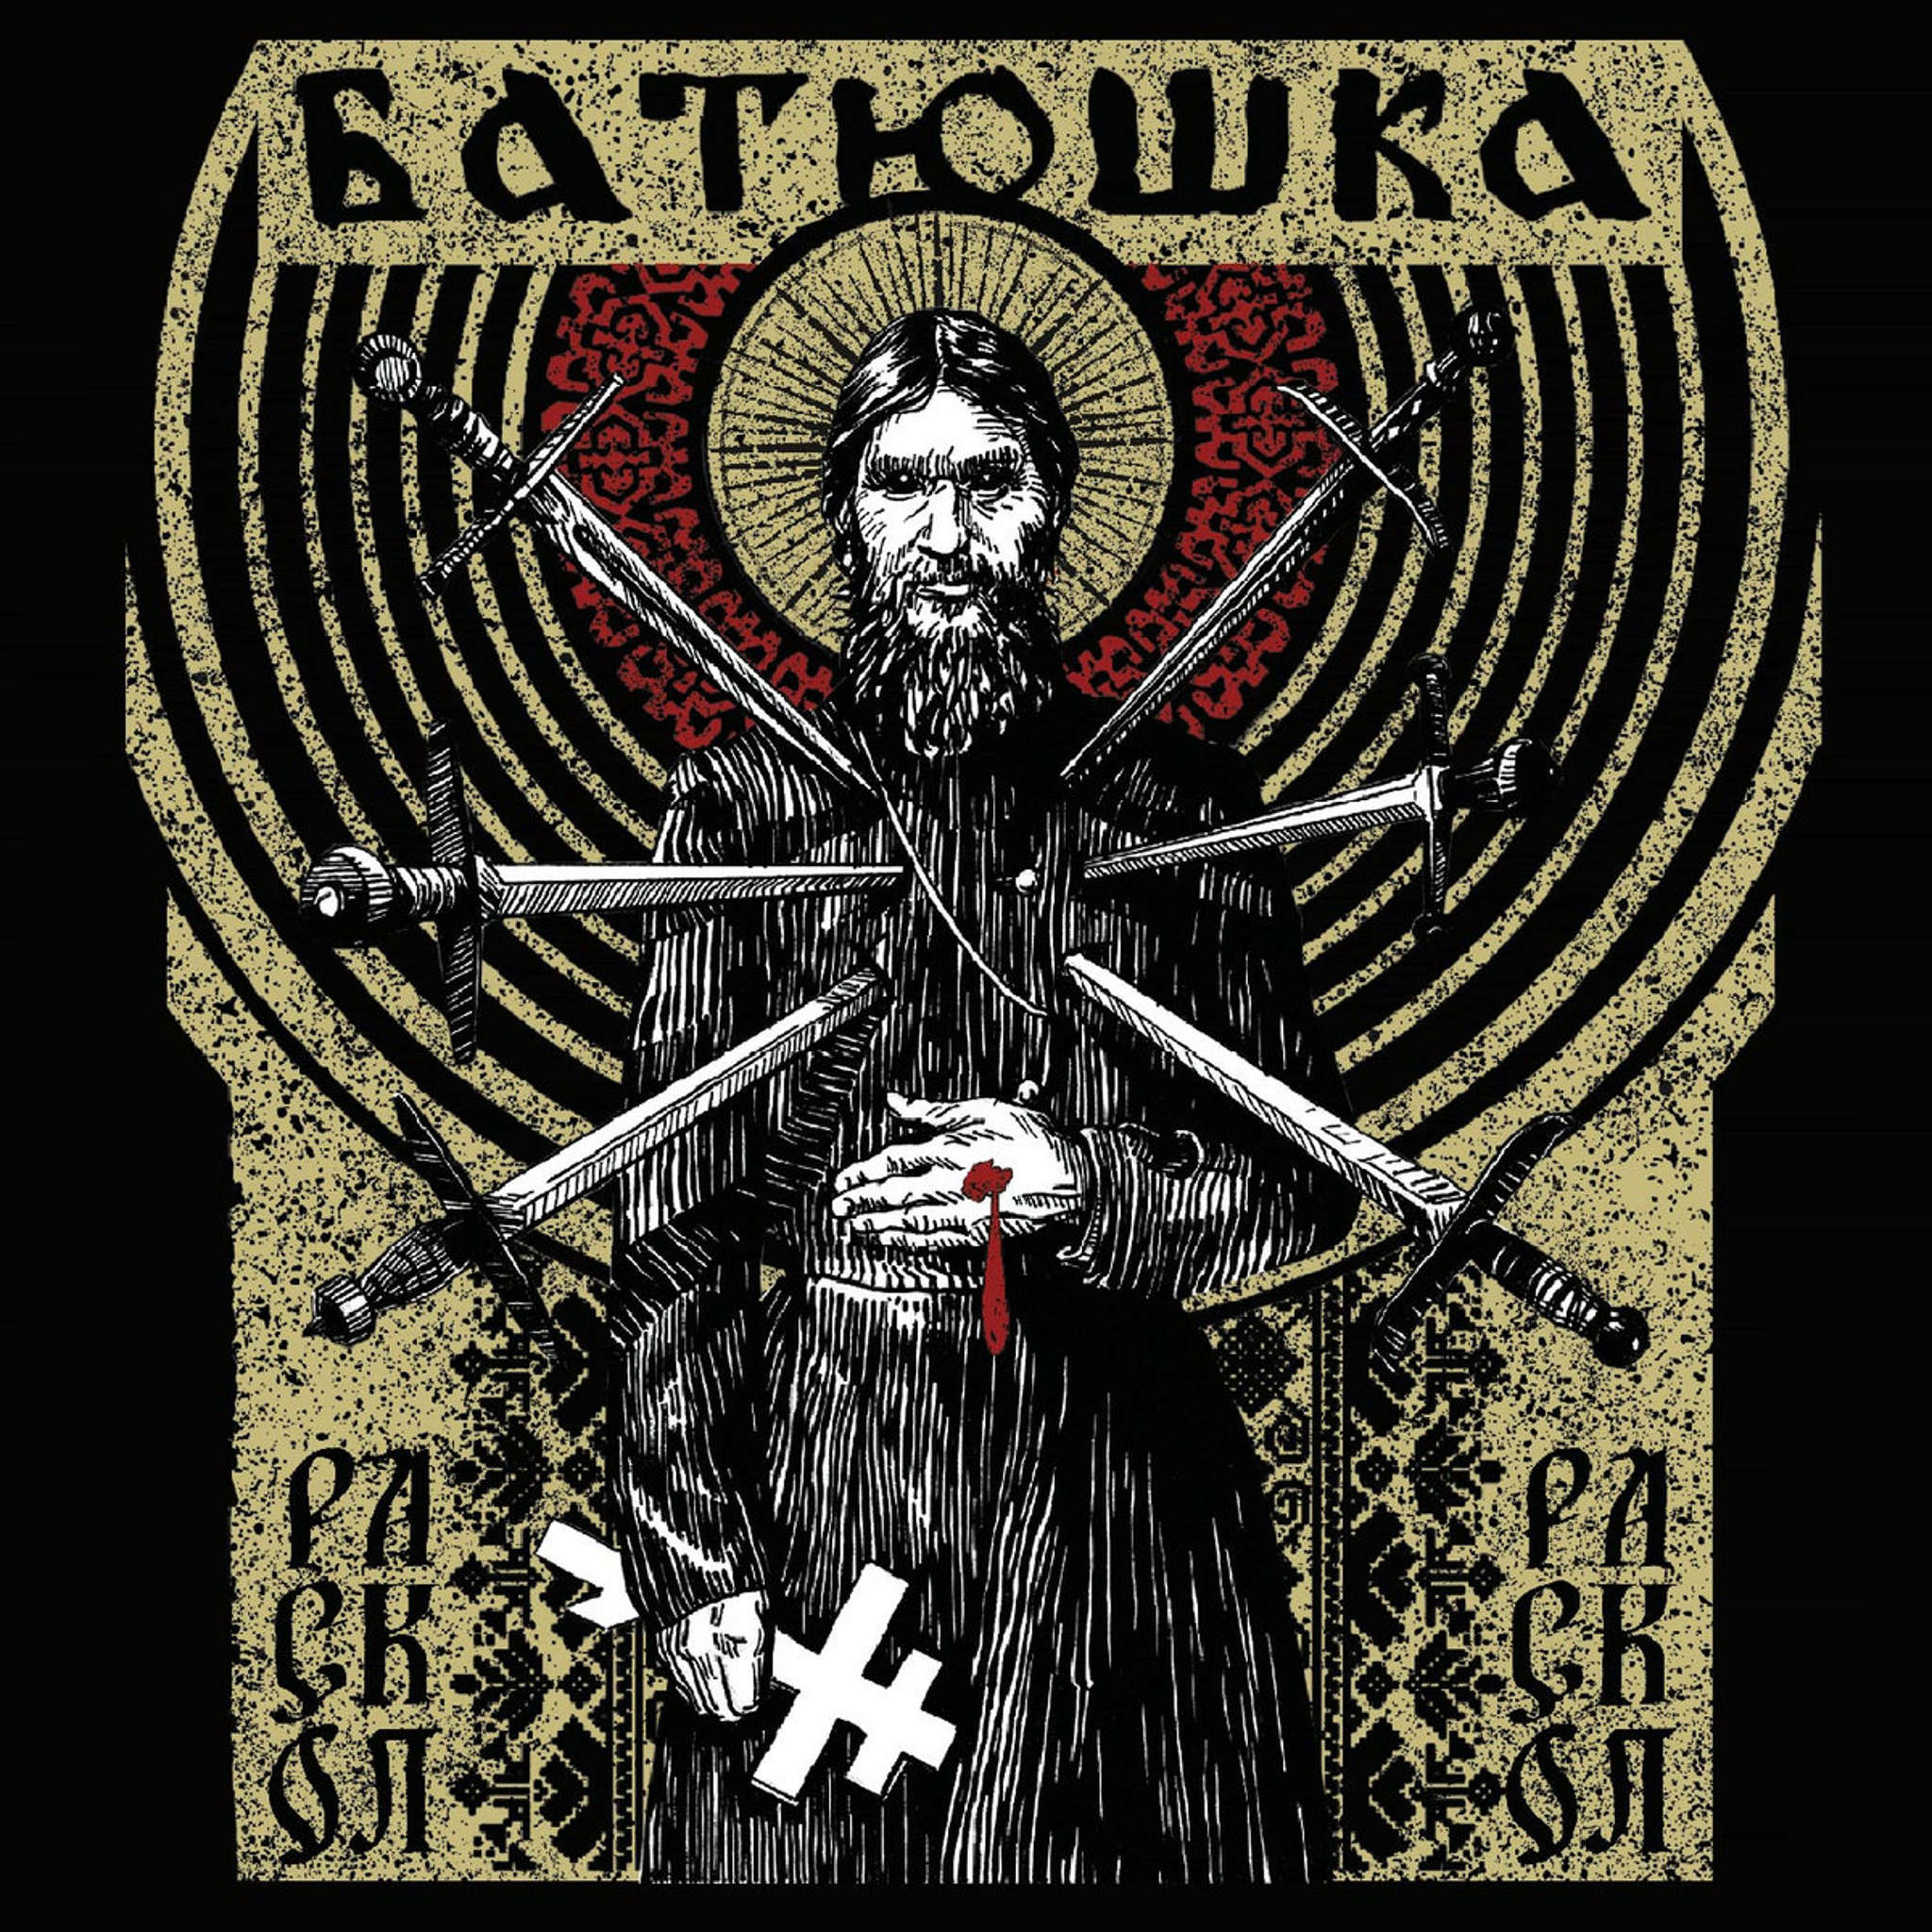 Batushka - Raskol (Раскол) (Digipak CD)